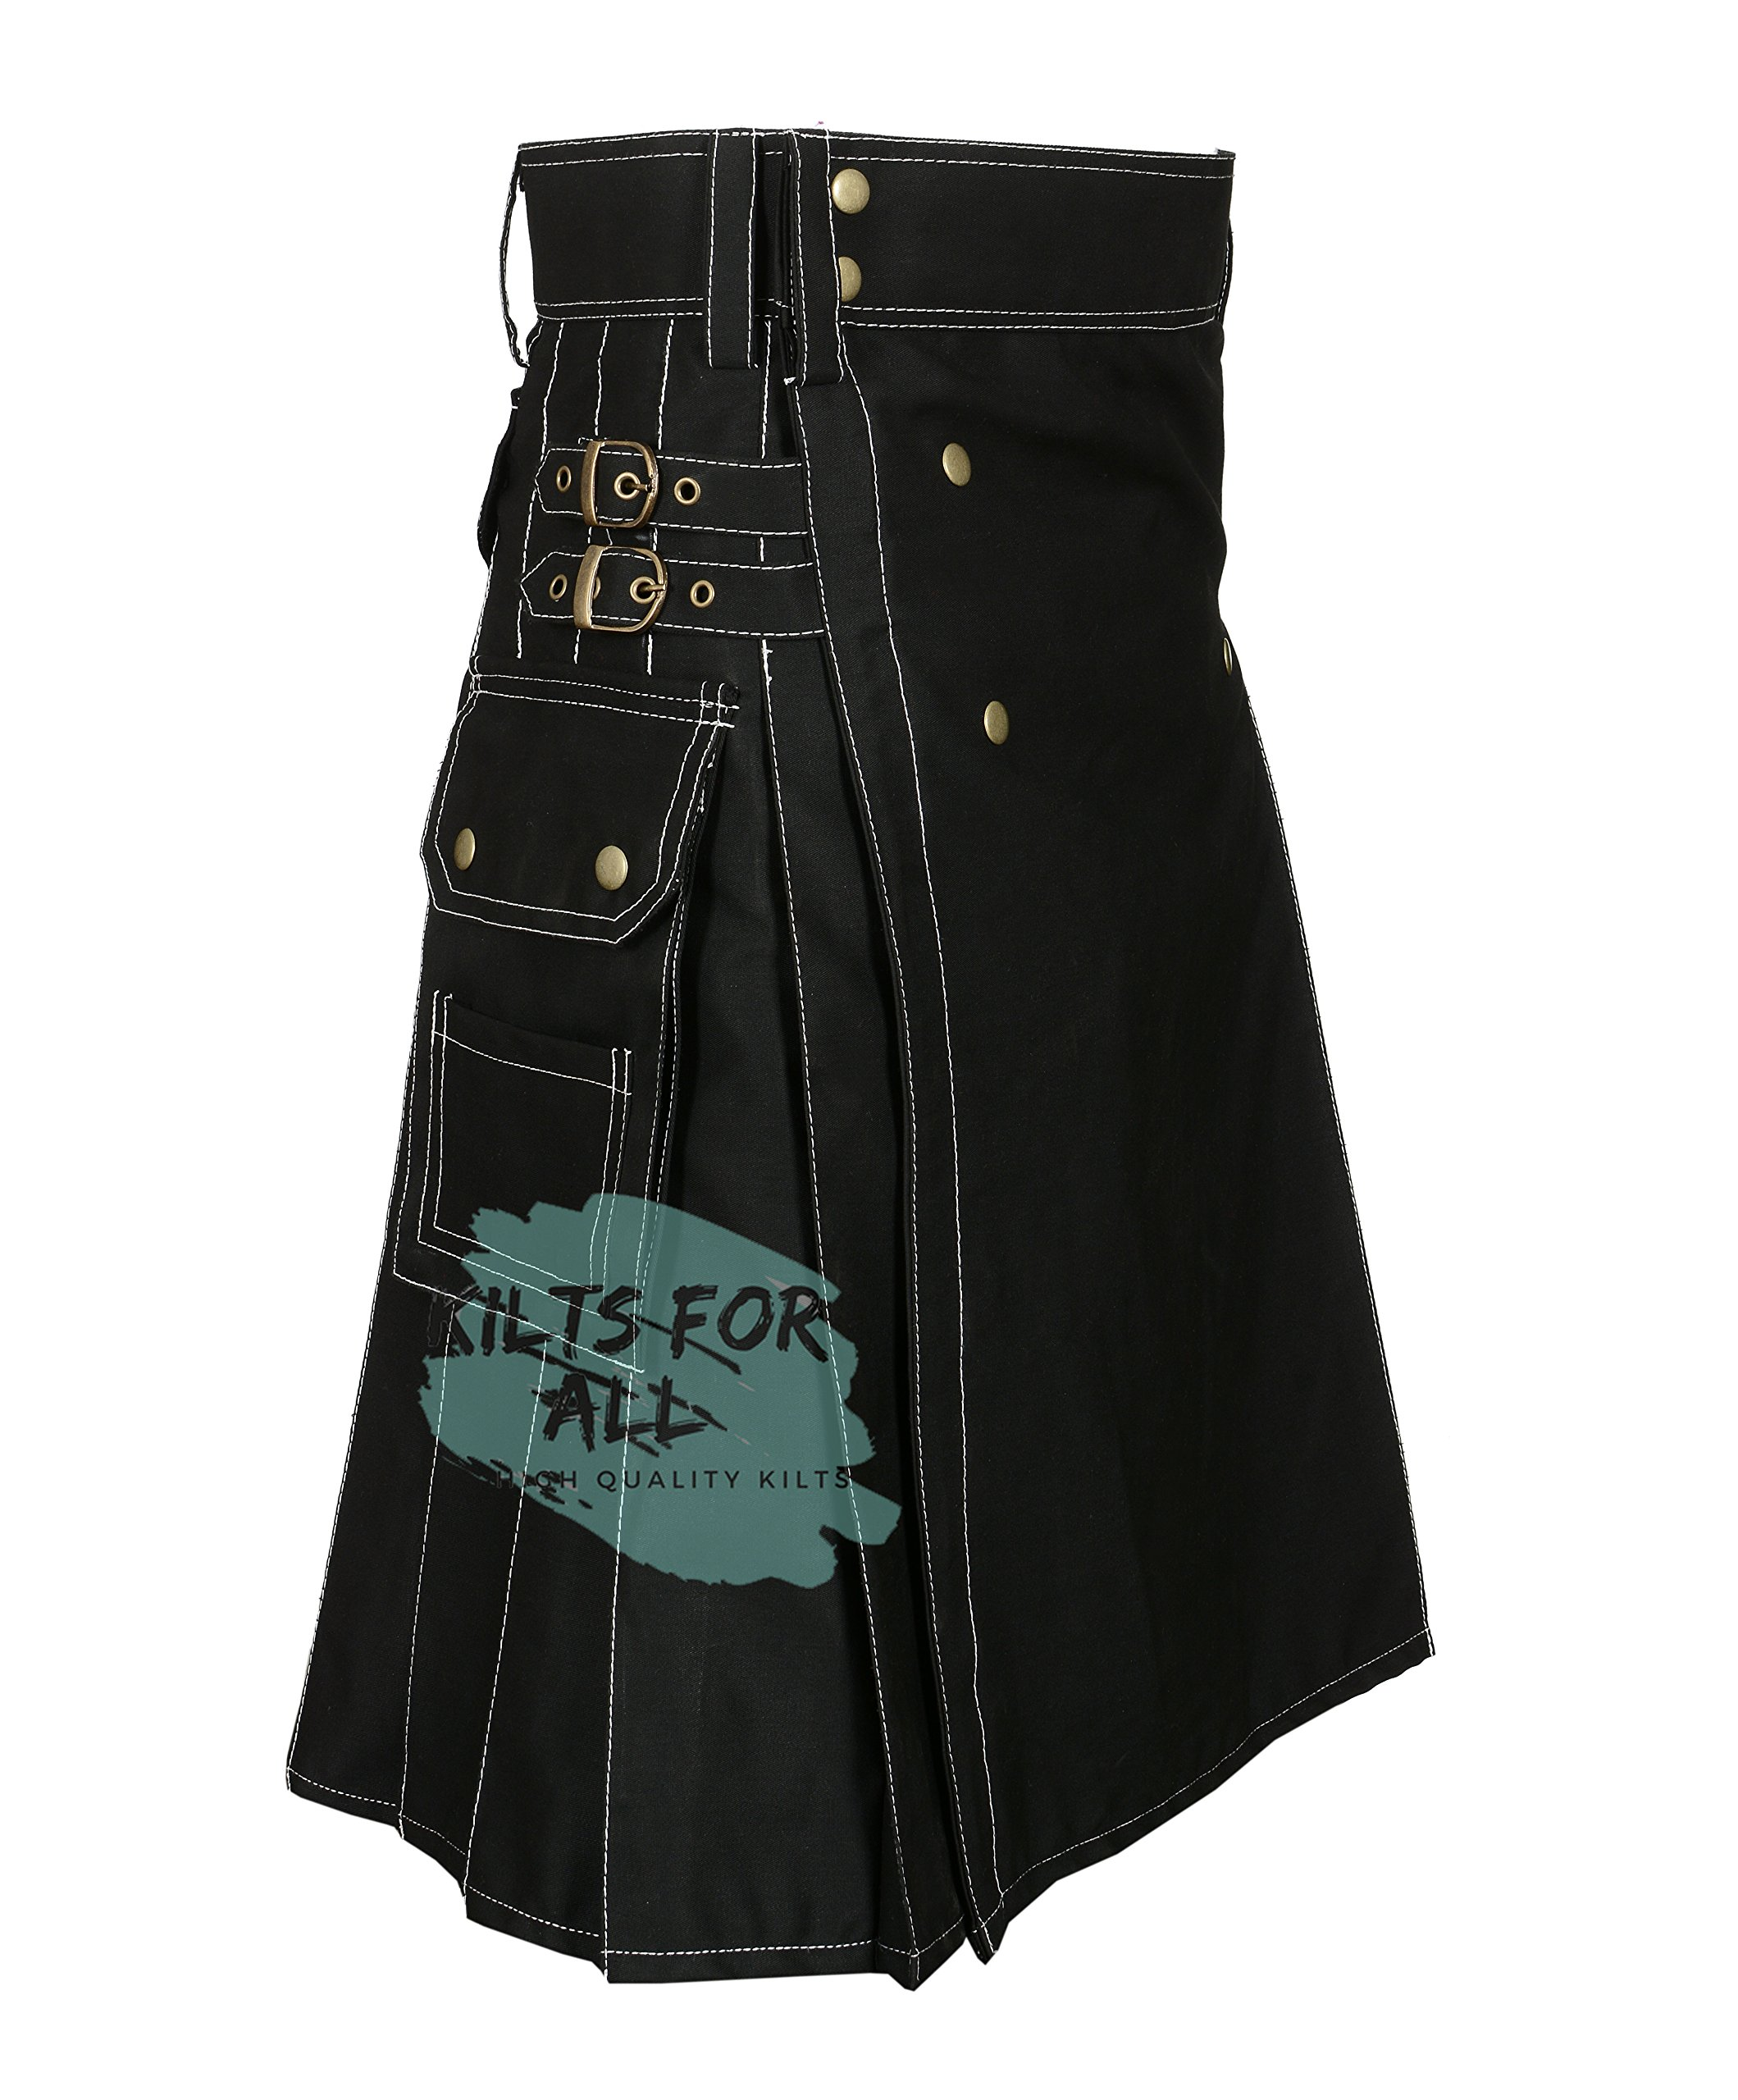 New Fashion Black Wedding Utility Kilt For Active Men (48'') by Kilts For All